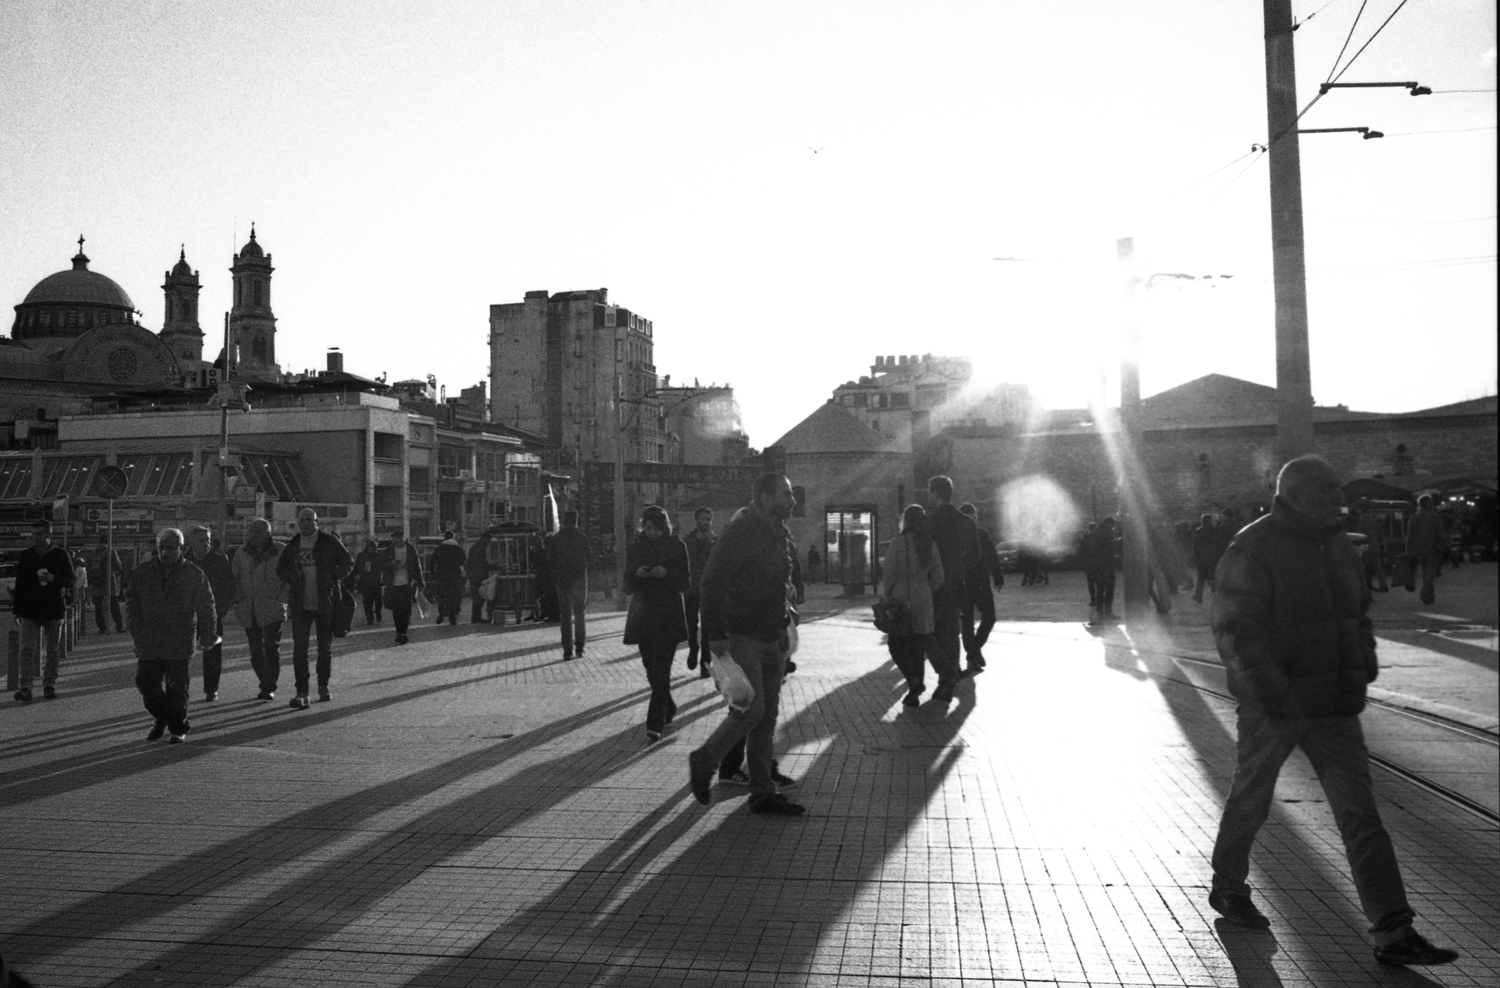 Taksim Square, the heart of Istanbul. A historically important venue for political dissent, Taksim was at the center of the Gezi Park protests of 2013.